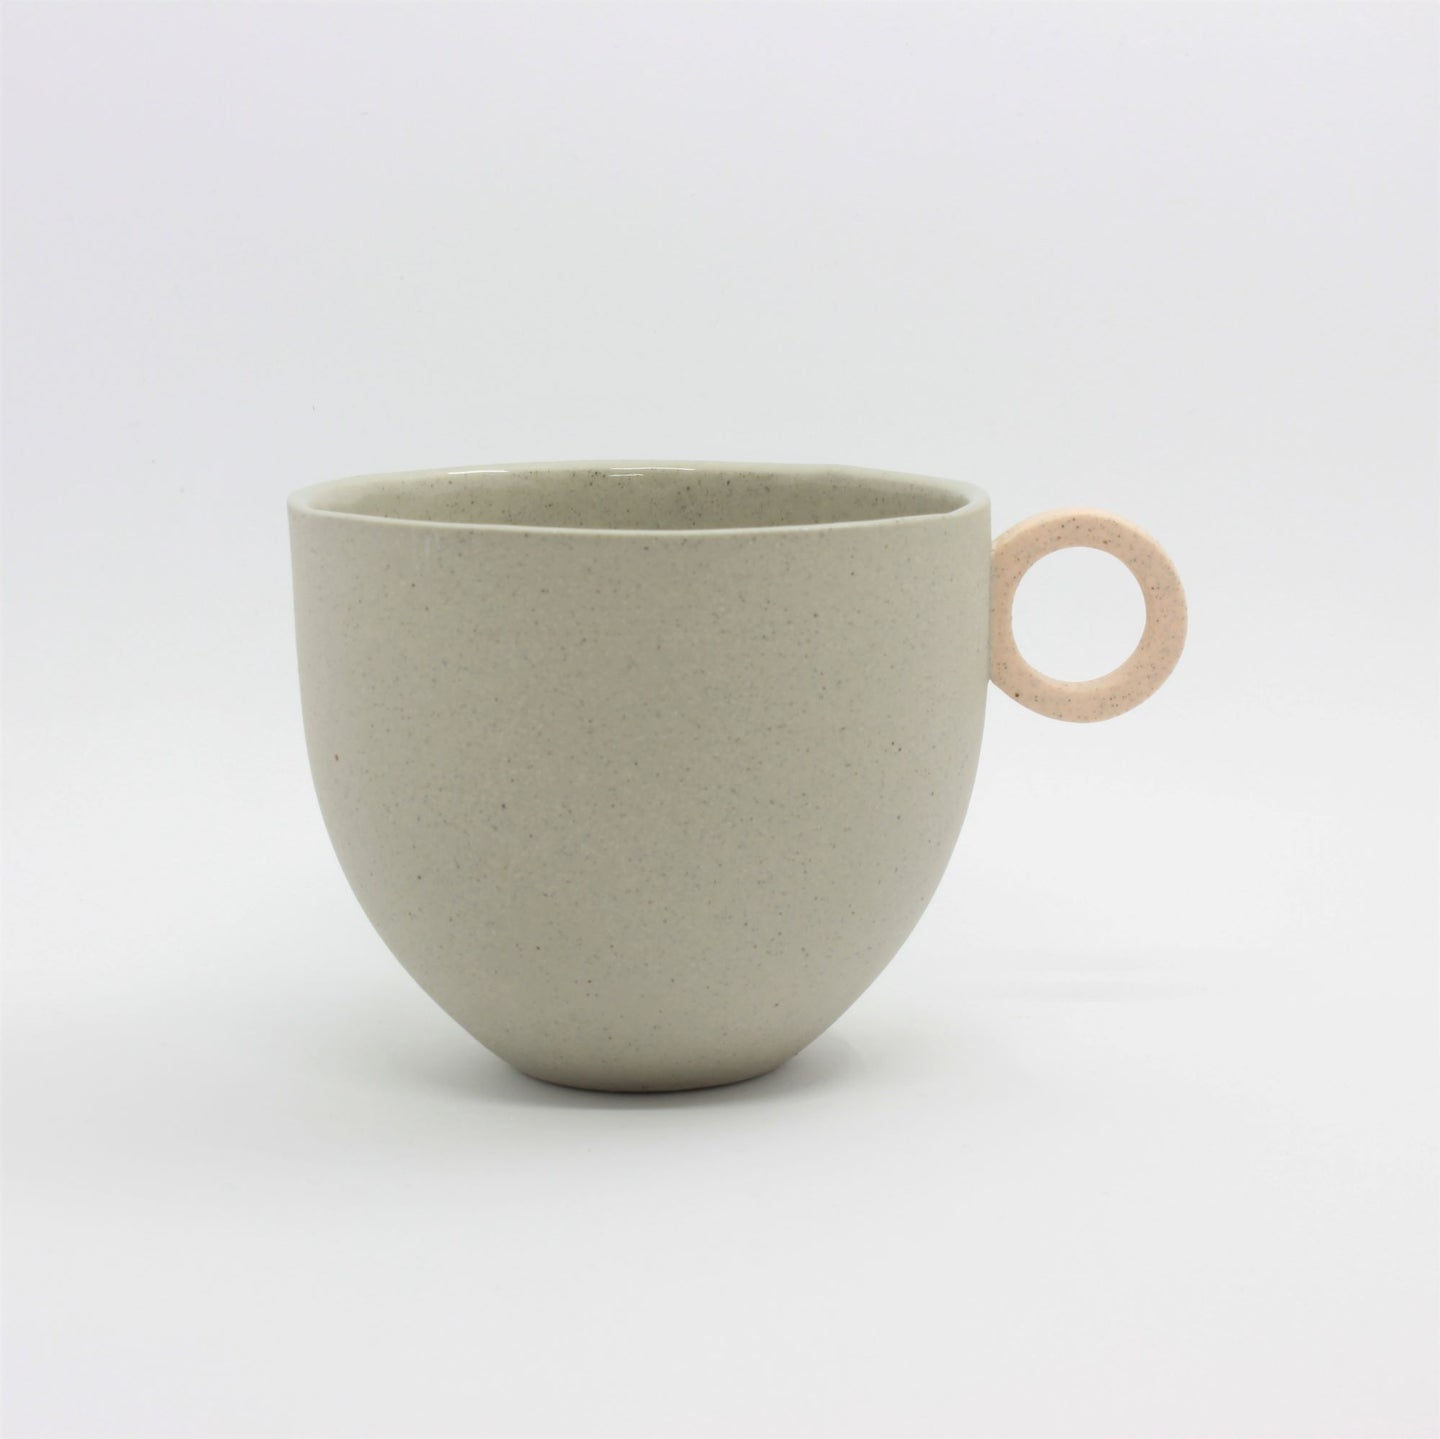 Matt Speckle Grey Mug